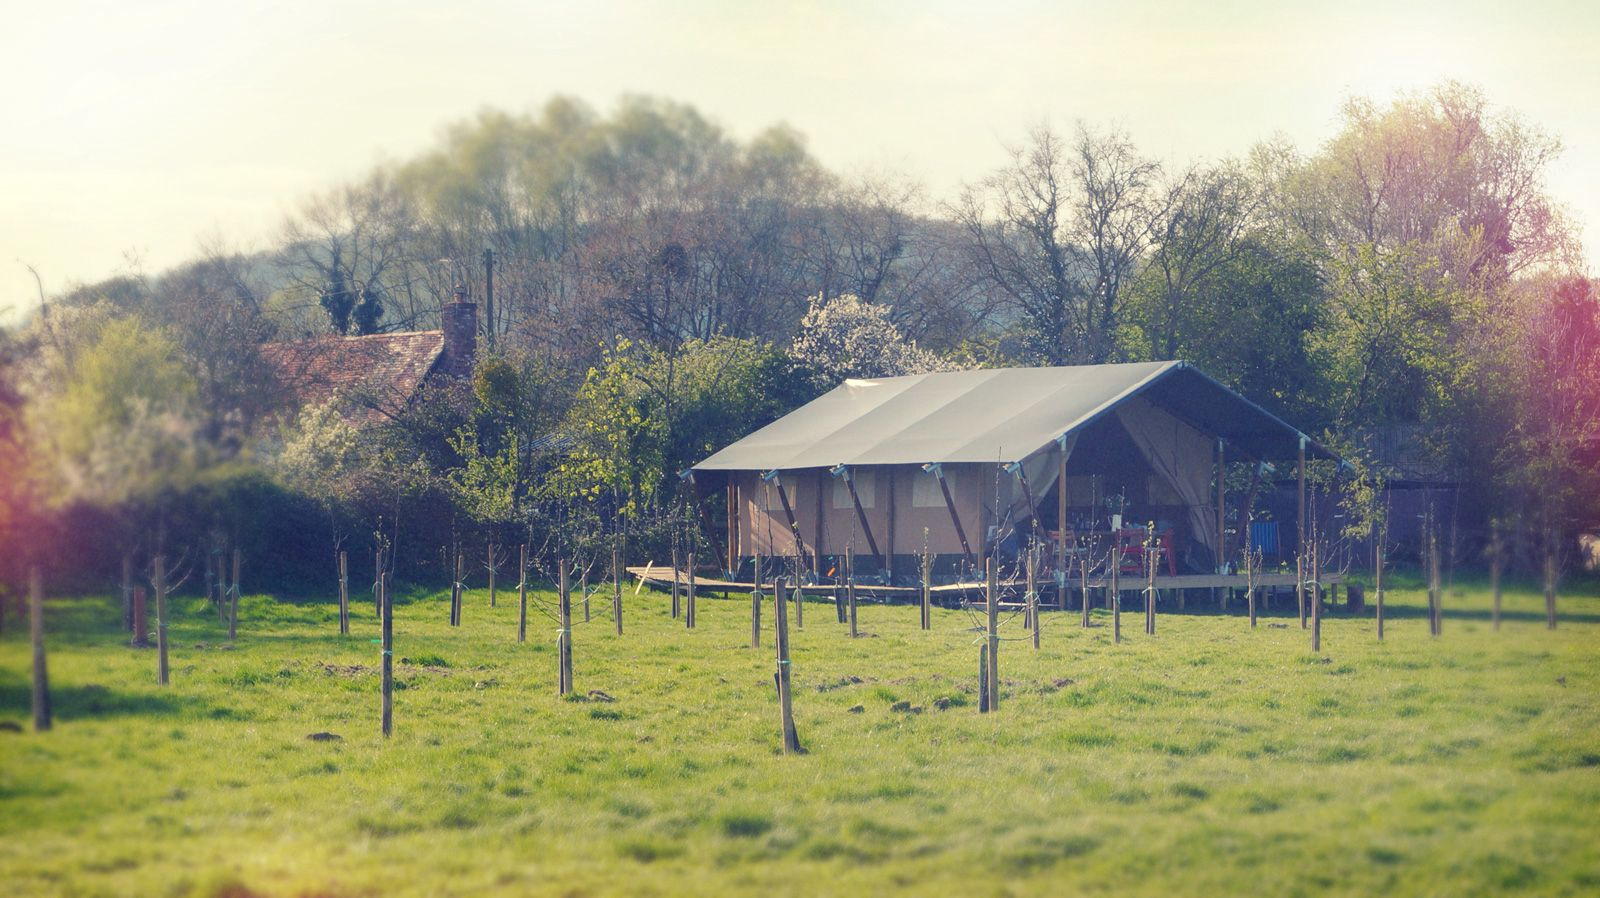 Glamping in Worcestershire: Boutique safari lodge glamping at the foot of the Malvern Hills.